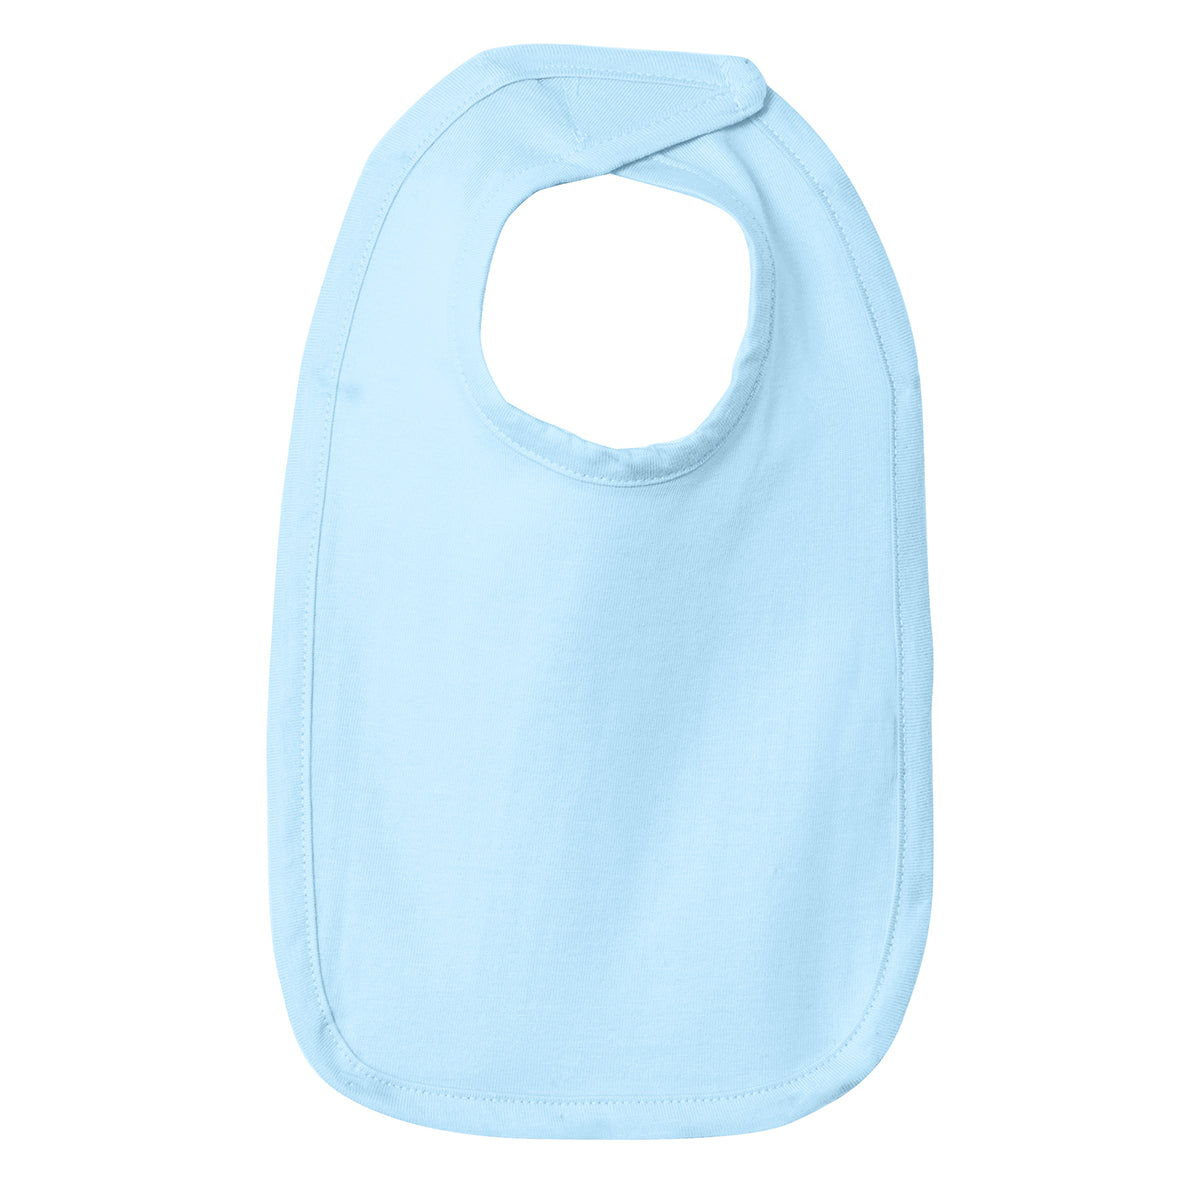 Infant Premium Jersey Bib - Light Blue